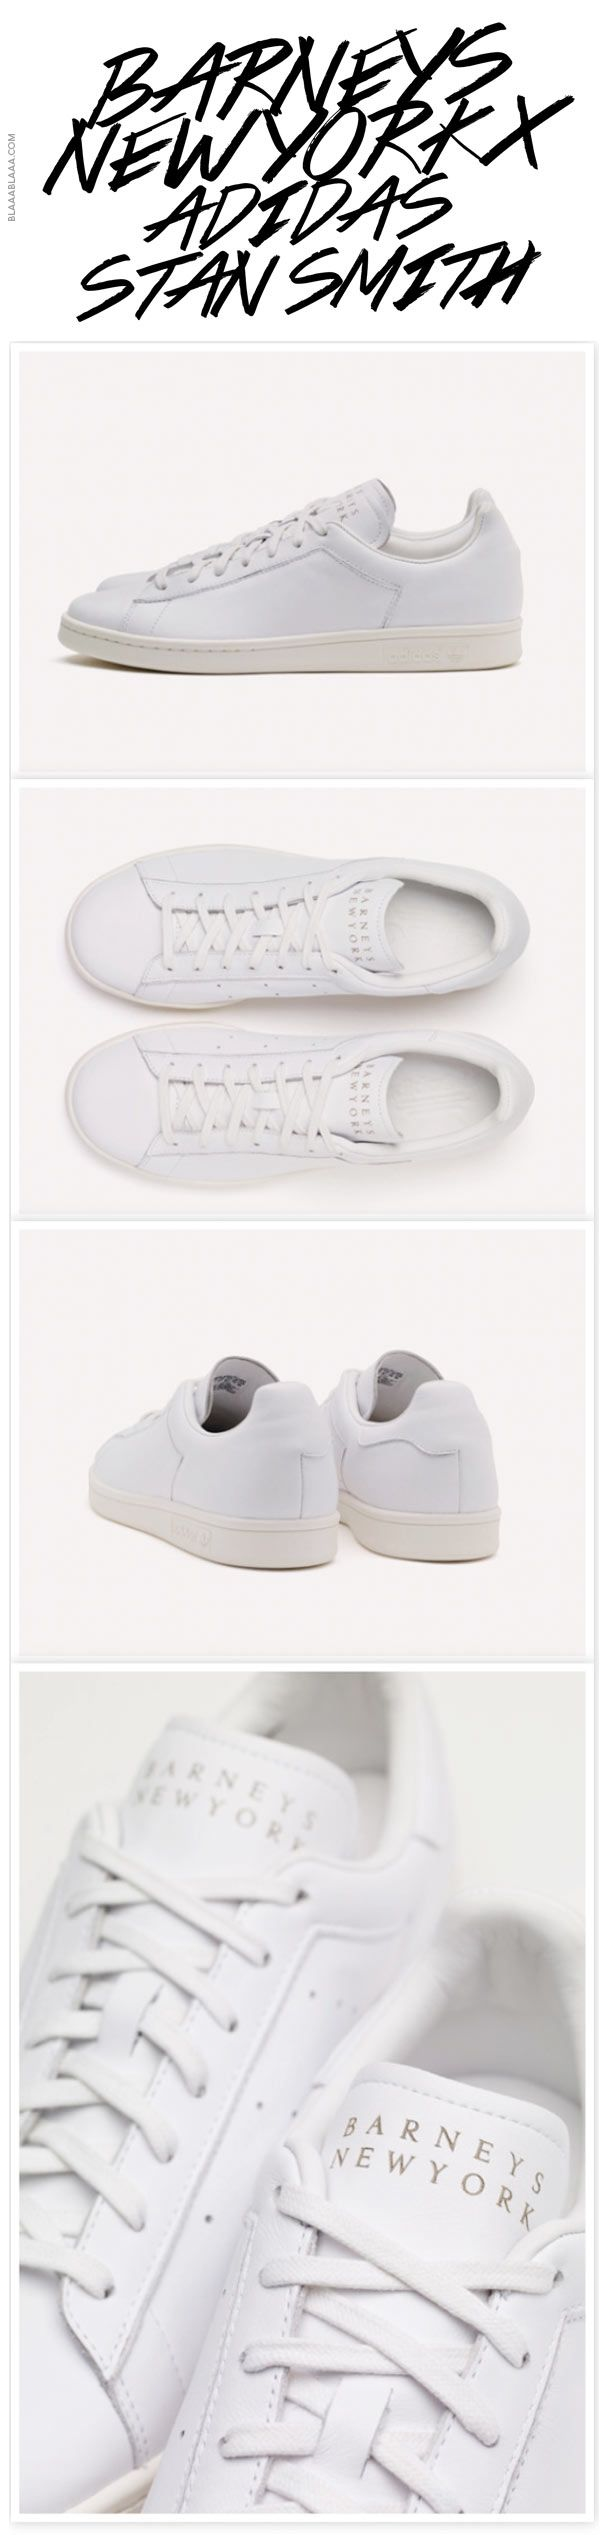 Barneys New York x Adidas Stan Smith